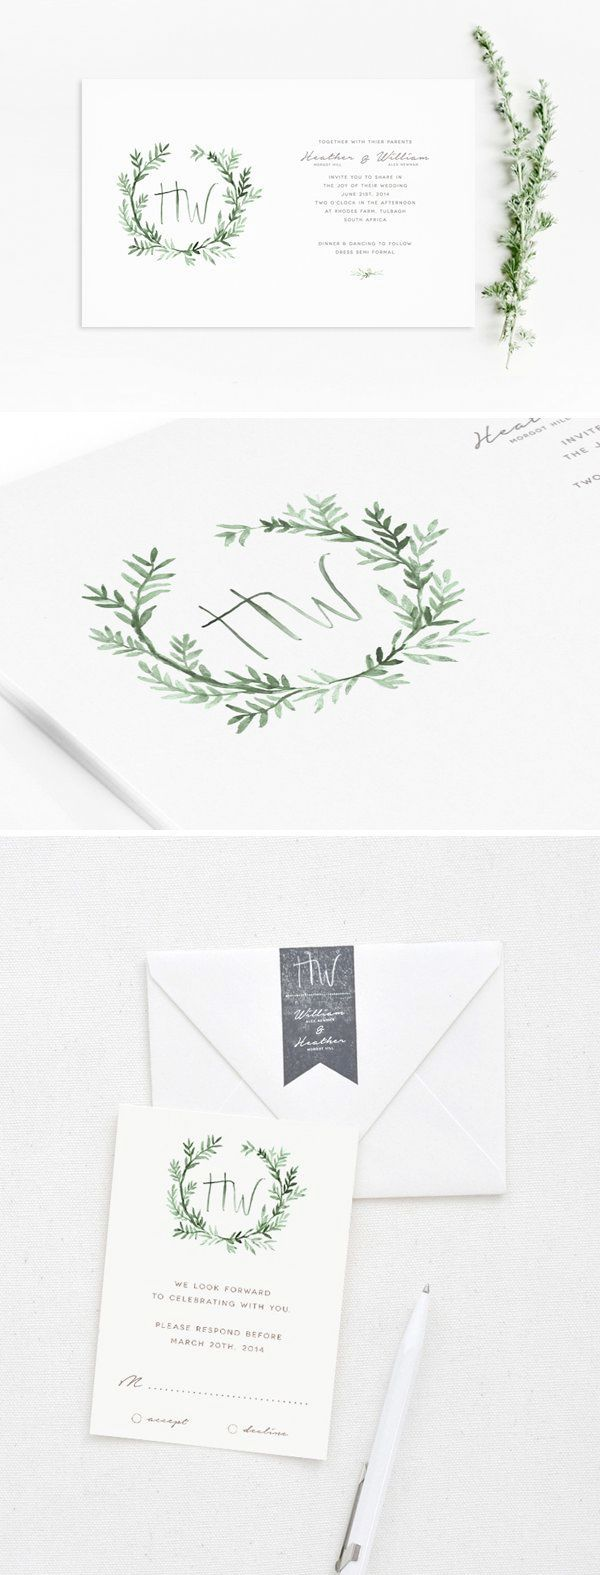 Diy wedding invitations rubber stamps funny wedding rsvp cards